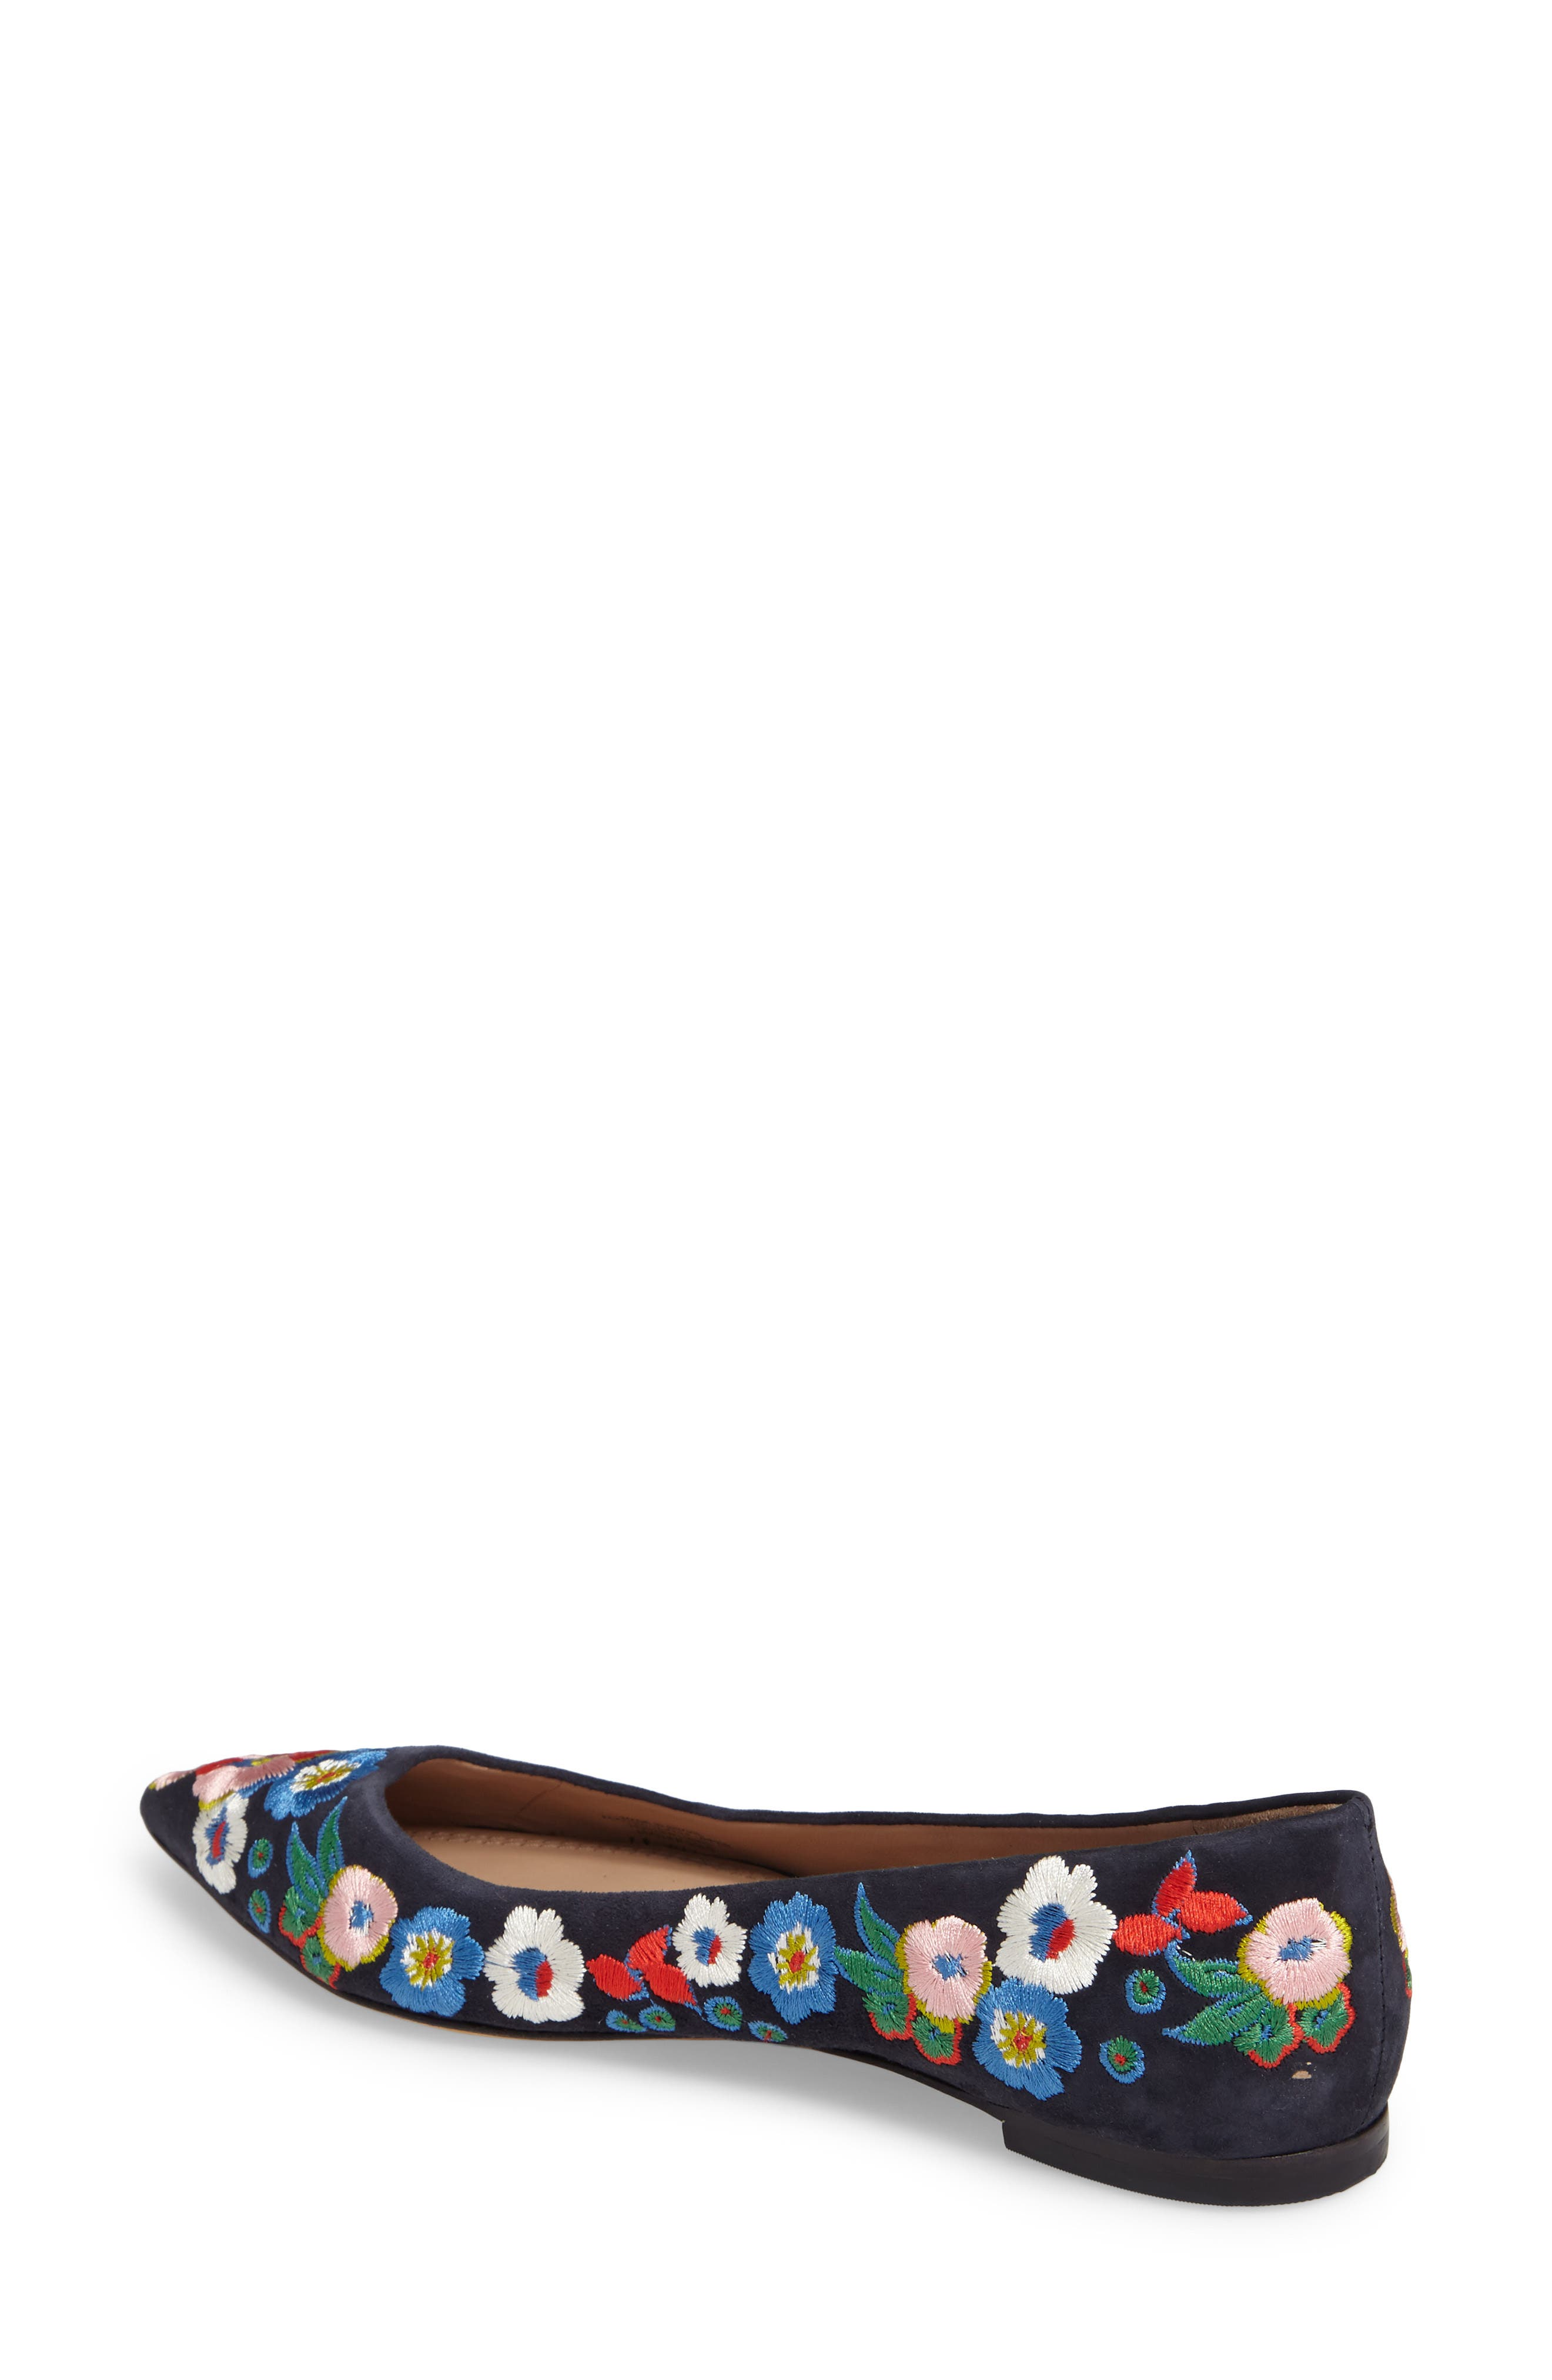 Rosemont Flower Embroidered Flat,                             Alternate thumbnail 2, color,                             Tory Navy/ Pansy Bouquet